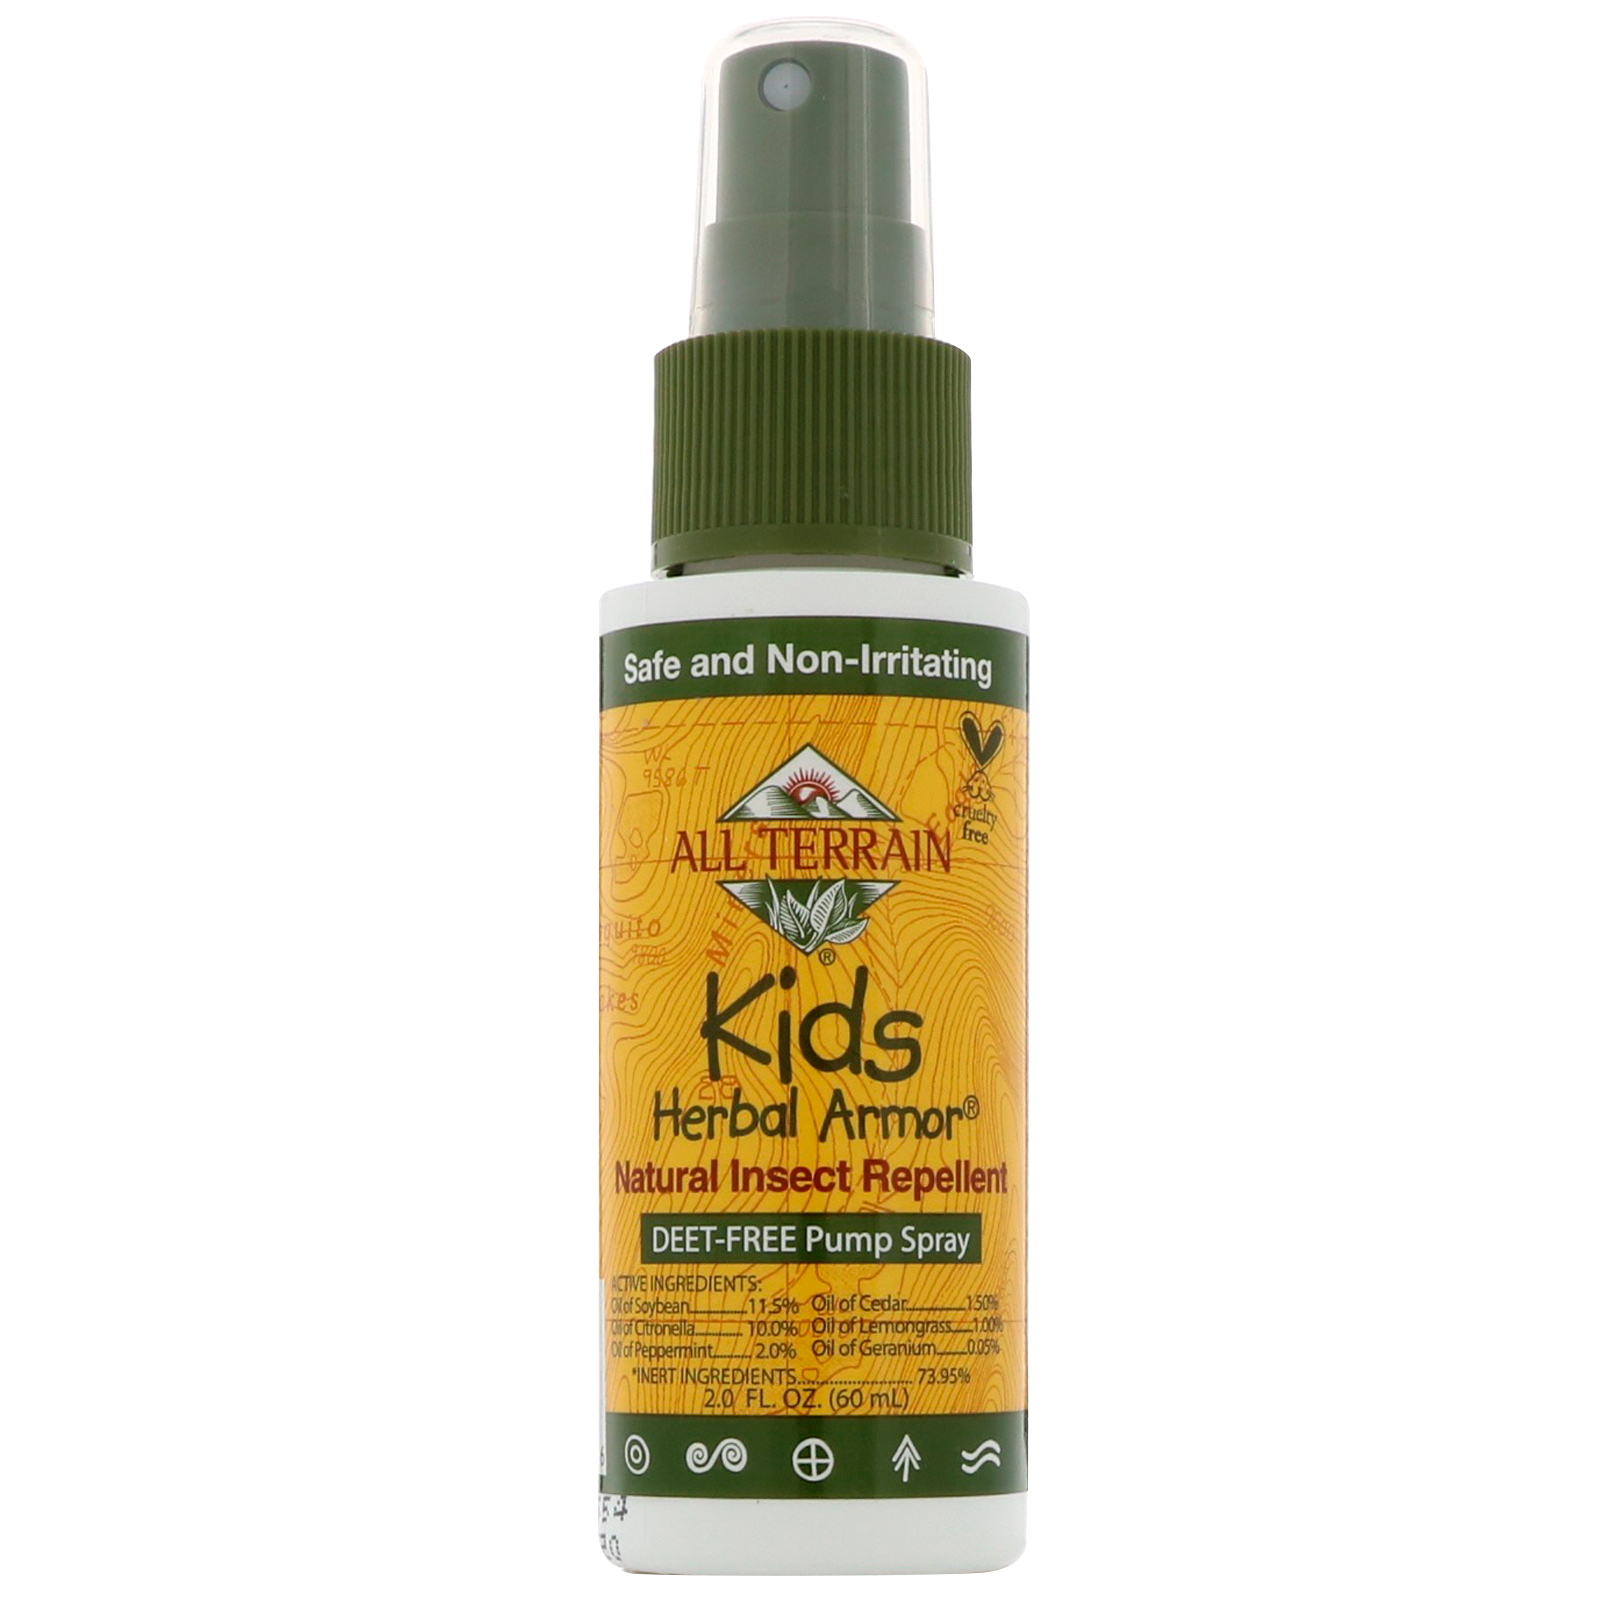 All Terrain, Kids Herbal Armor, Natural Insect Repellent, 2 0 fl oz (60 ml)